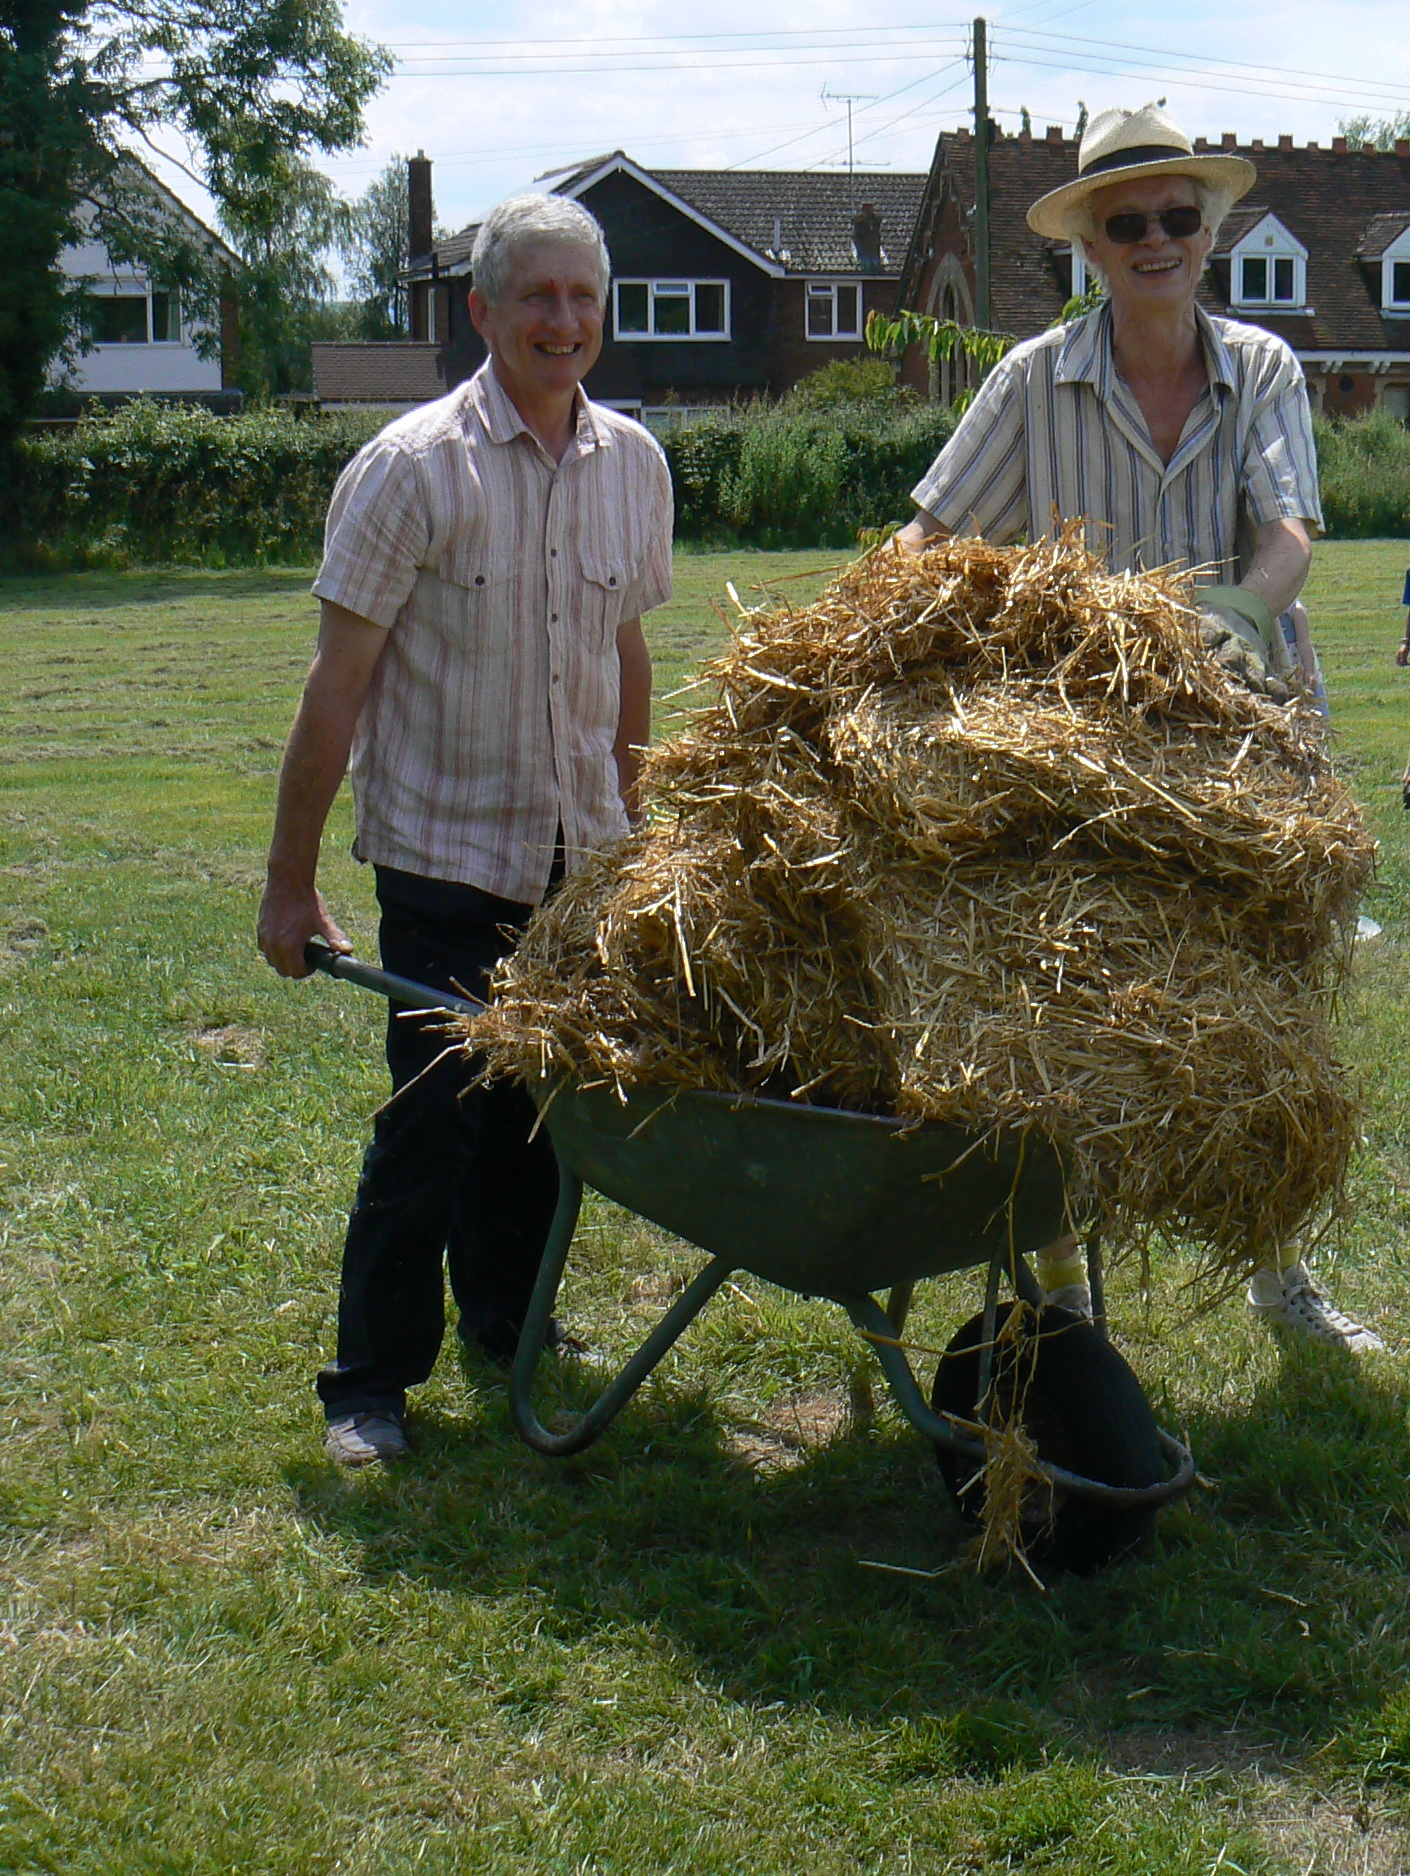 Peter and Tony with the straw in a squeaky wheelbarrow.